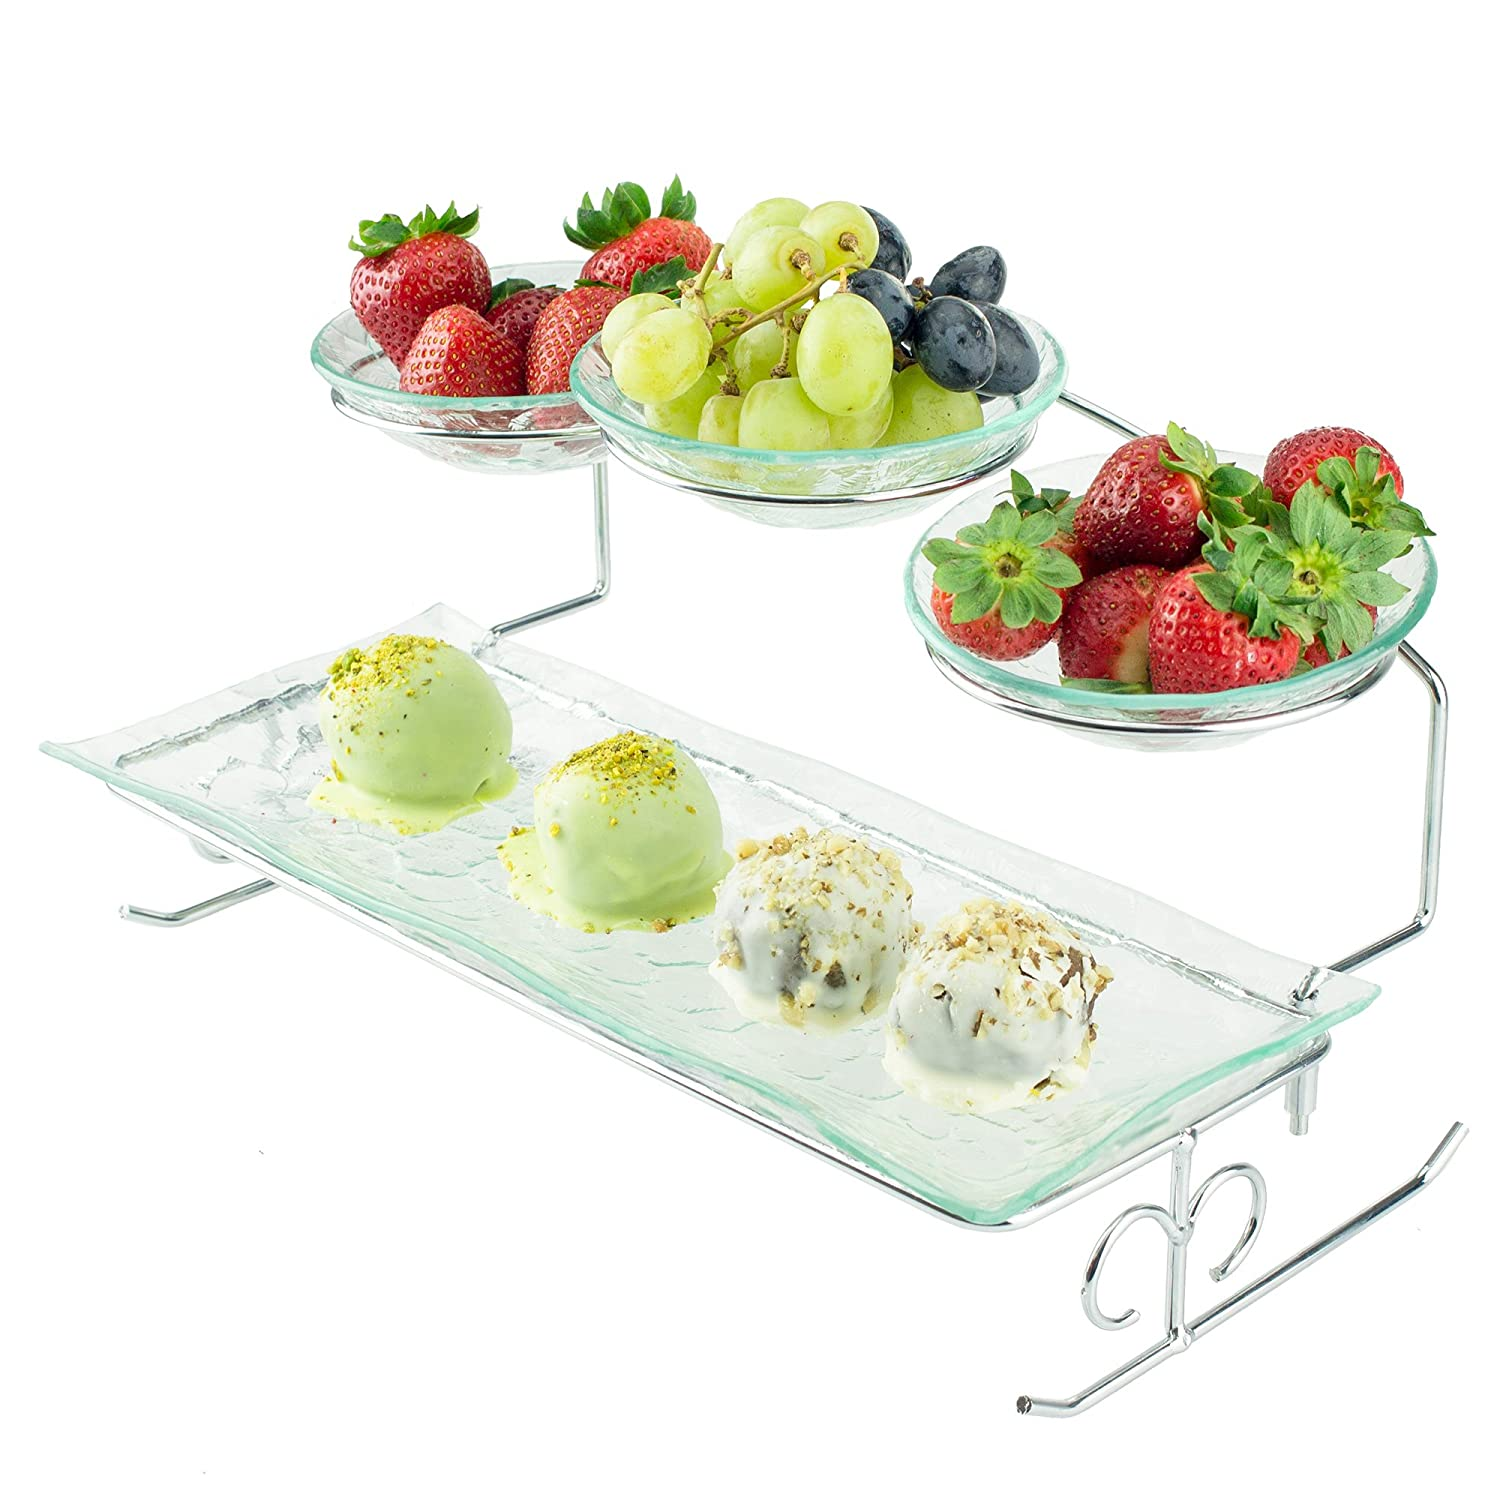 Tiered Serving Platter Appetizers /& More Shrimp Perfect for Cake 2 Tier Server Stand with Bowls /& Tray Dessert